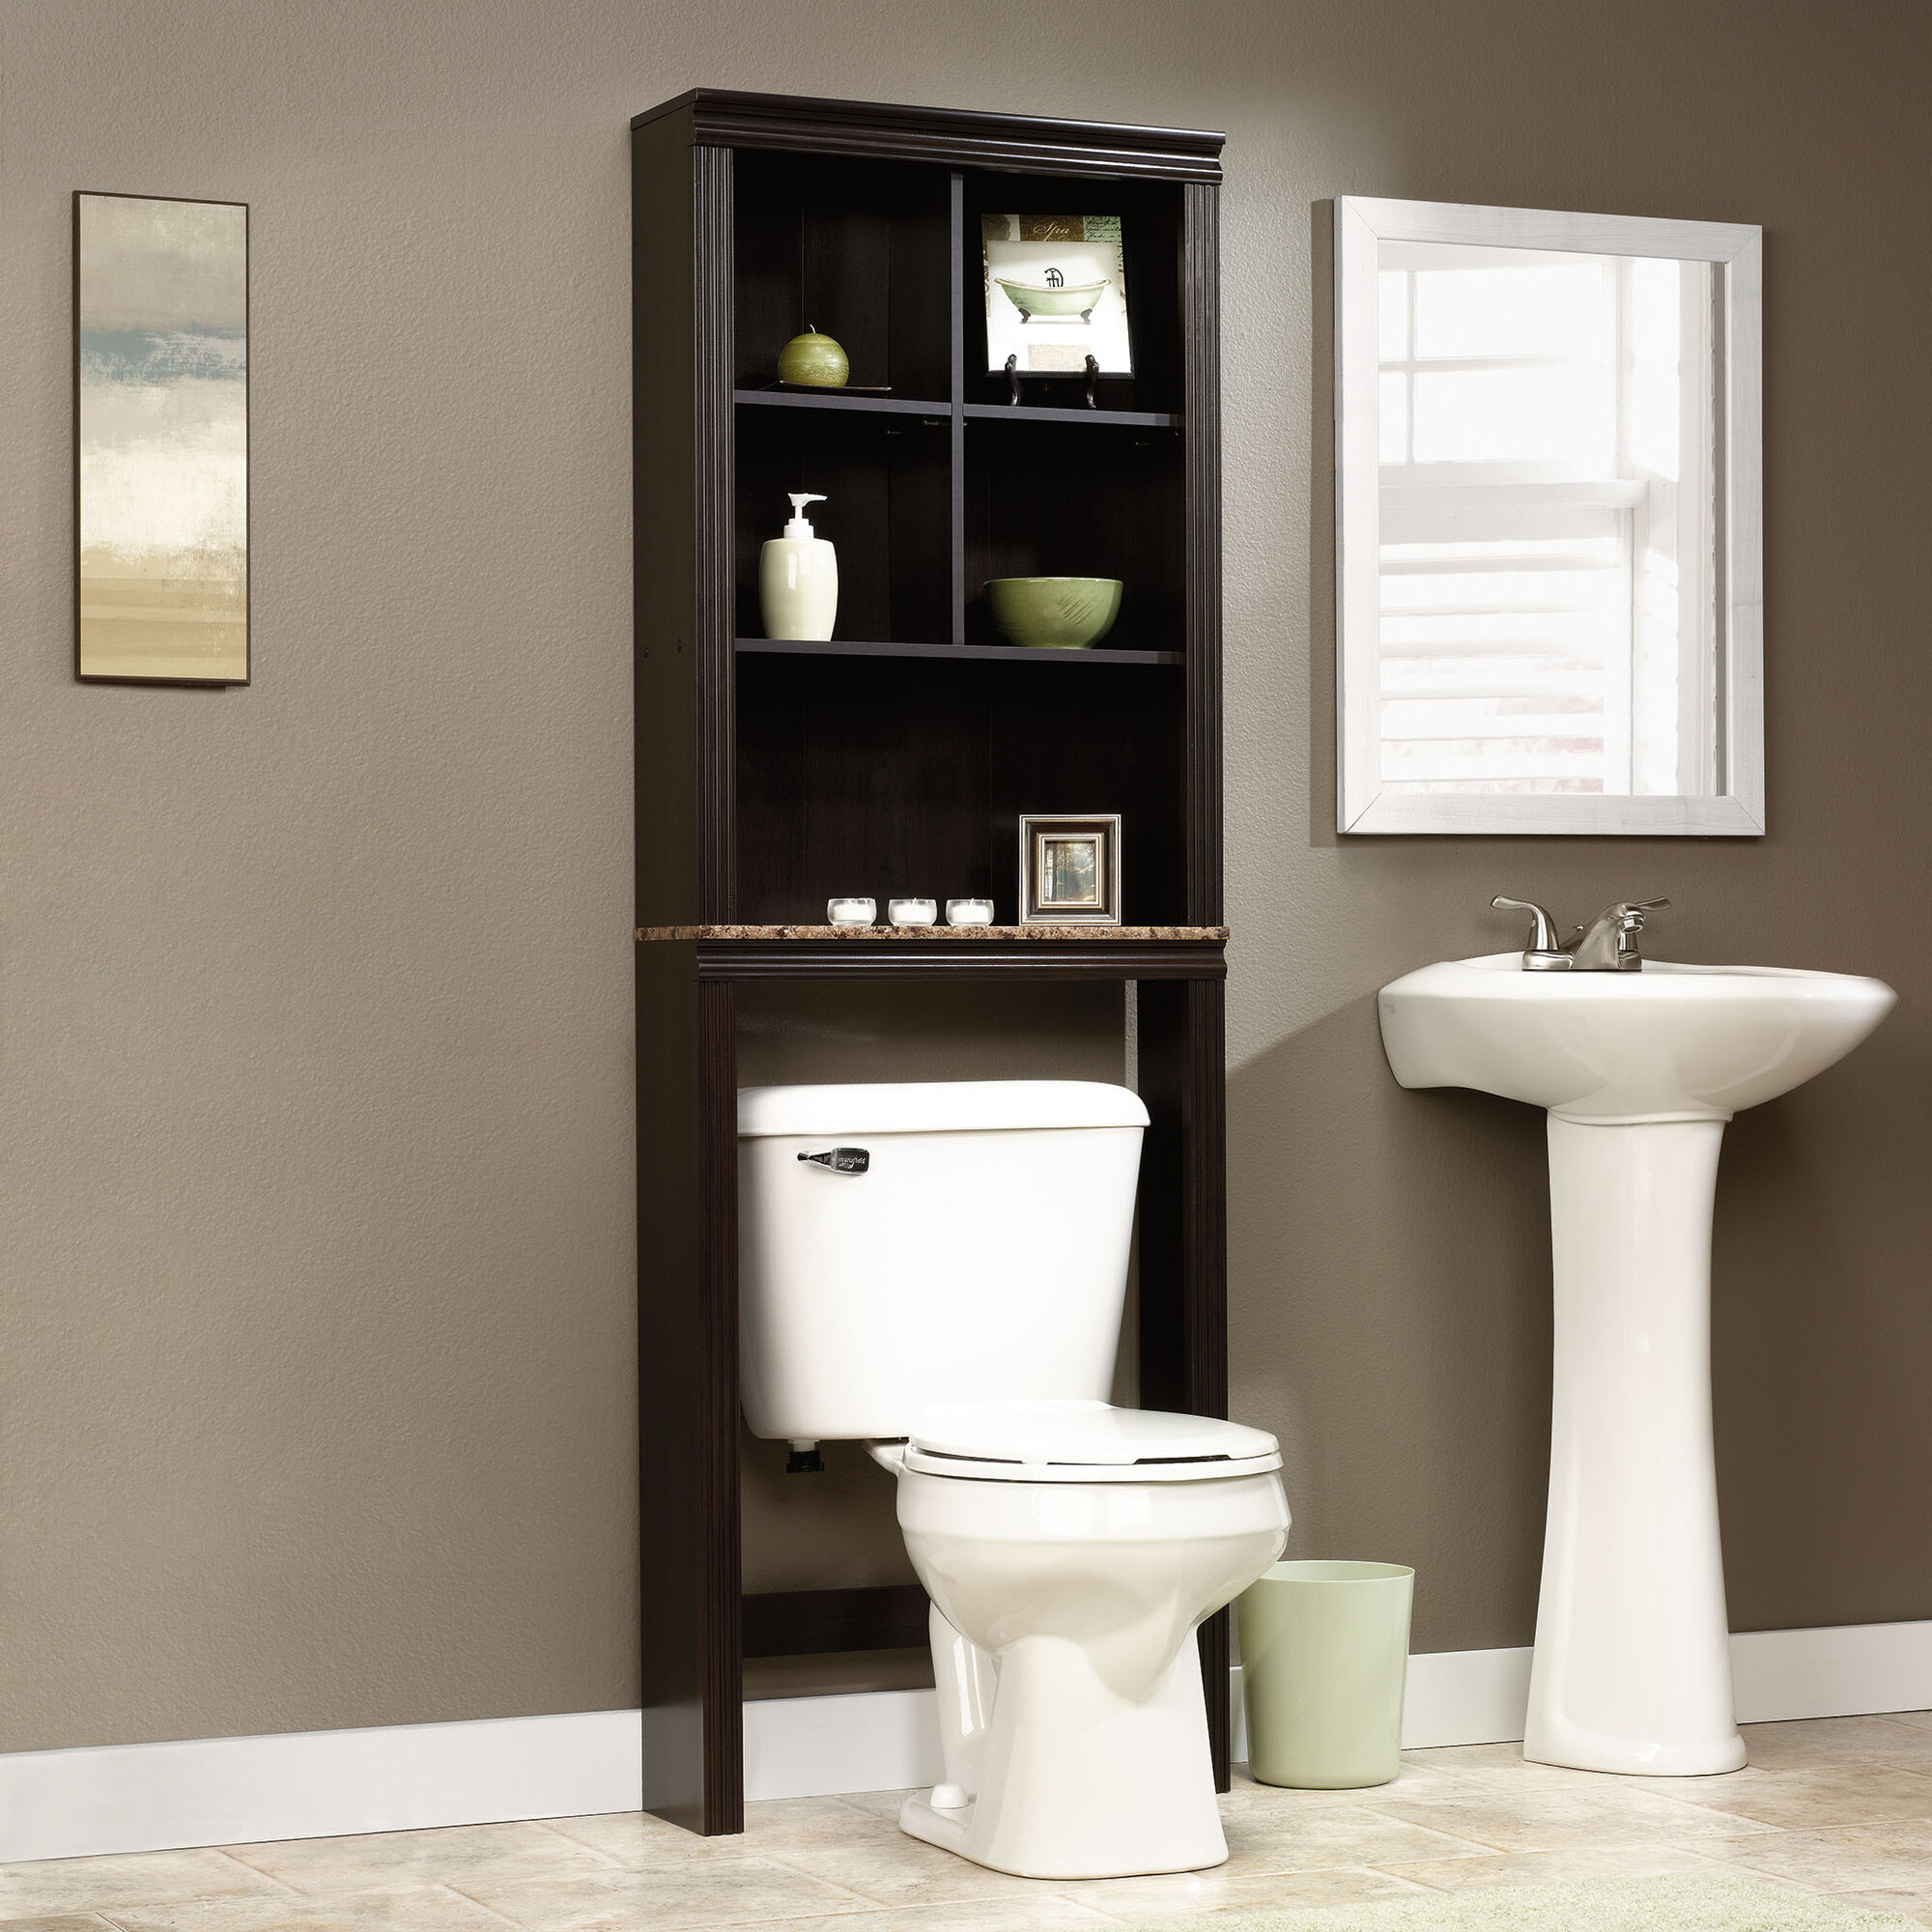 Over The Toilet Storage Bathroom Space Saver Cubby ...